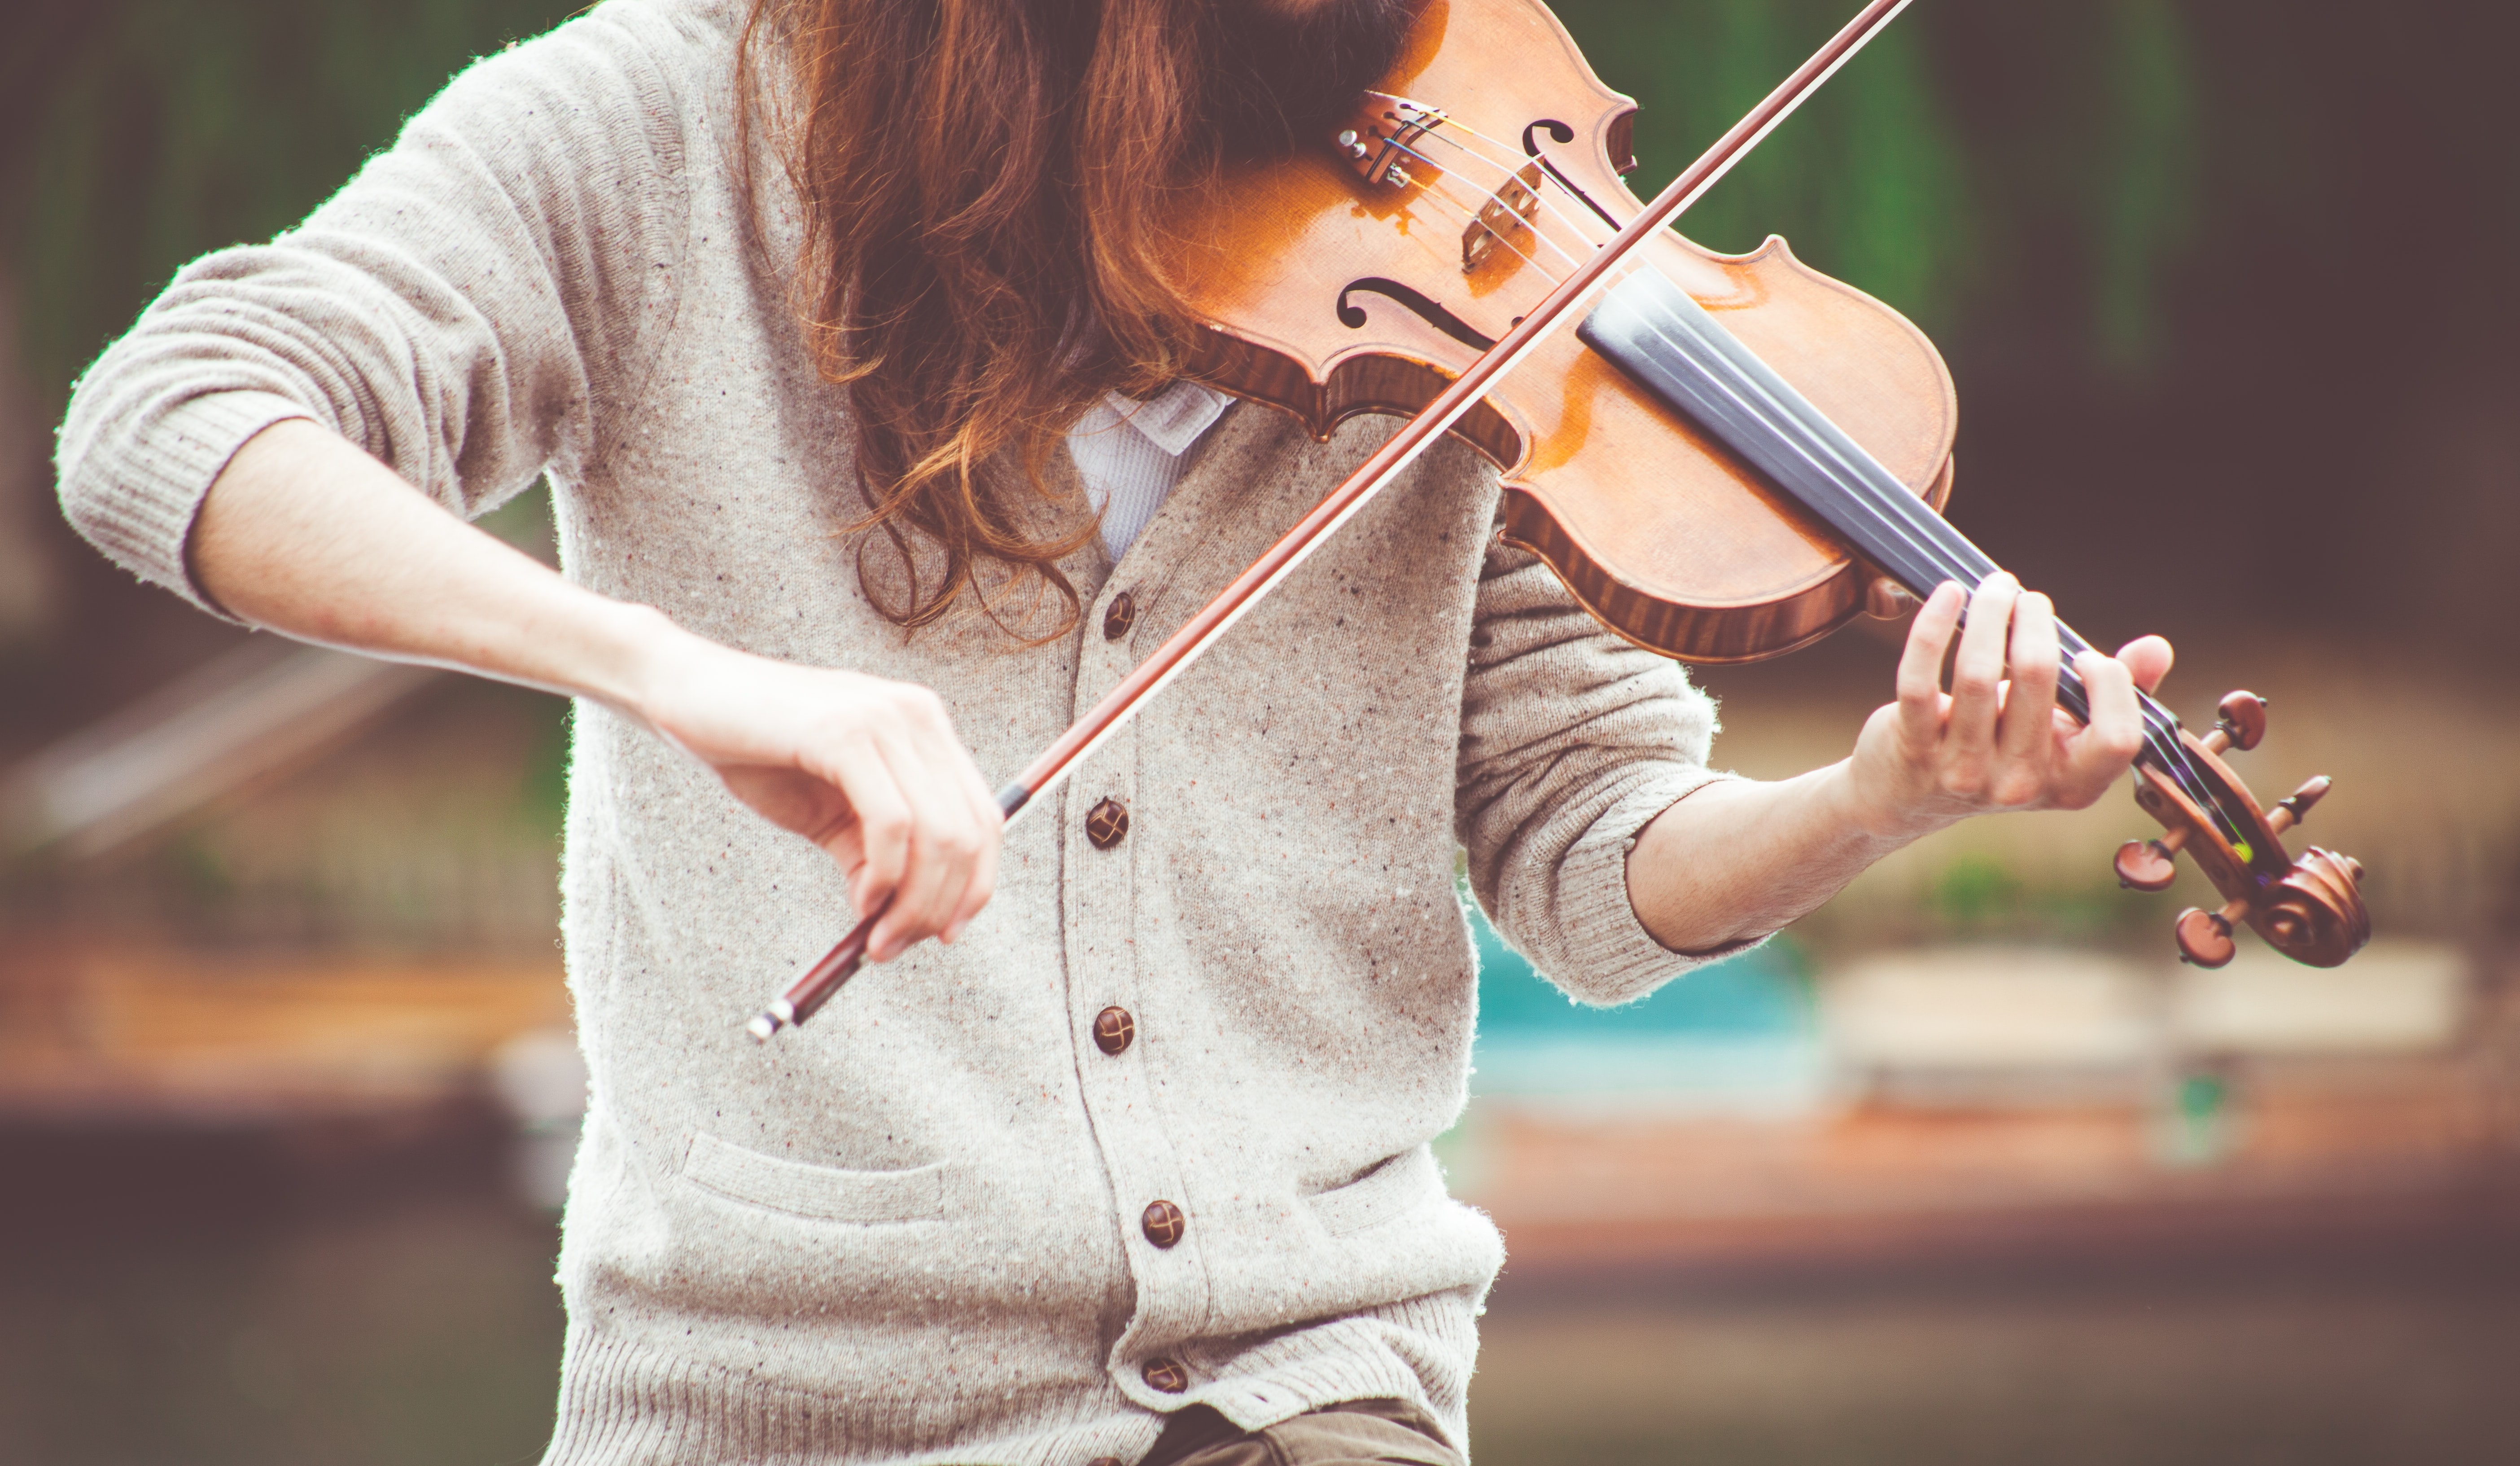 A person in a grey sweater playing the violin outdoors